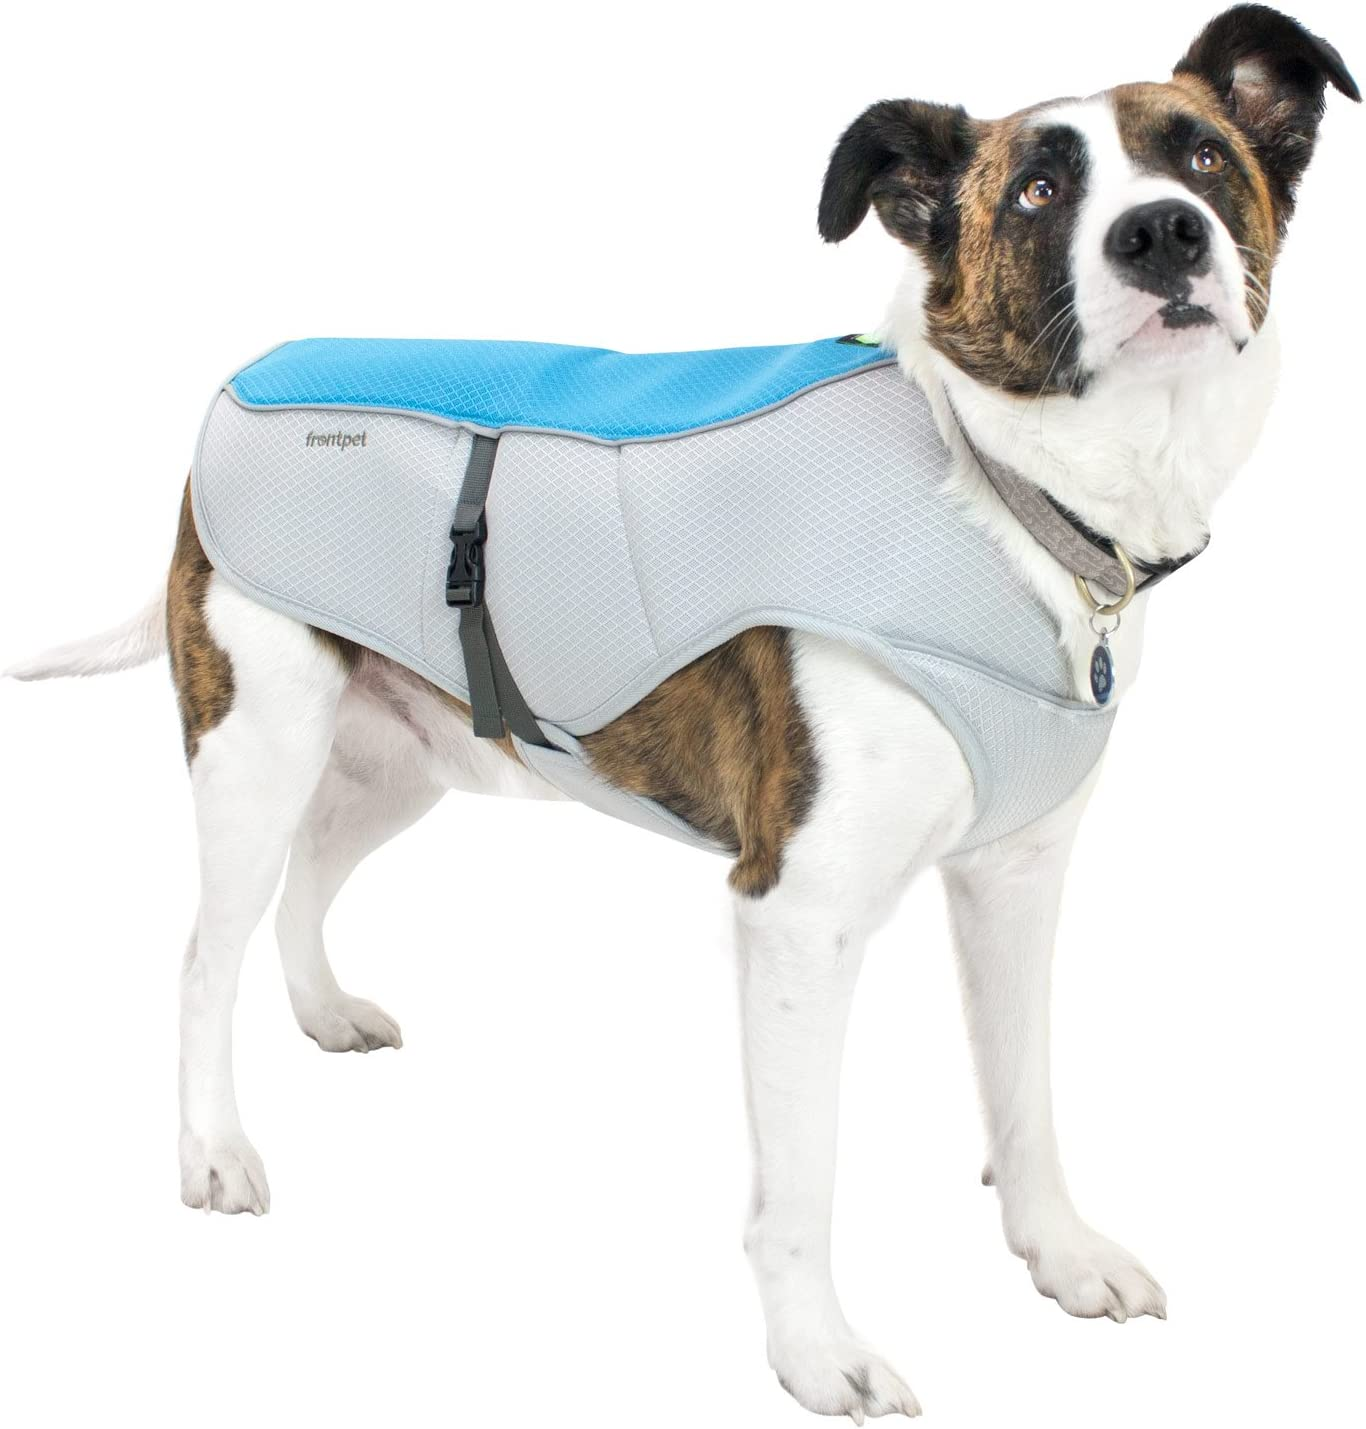 FrontPet Dog Cooling Vest with Adjustable Side Straps and Highly Visible Reflective Padding, Fits Most Medium and Large Breed Dogs